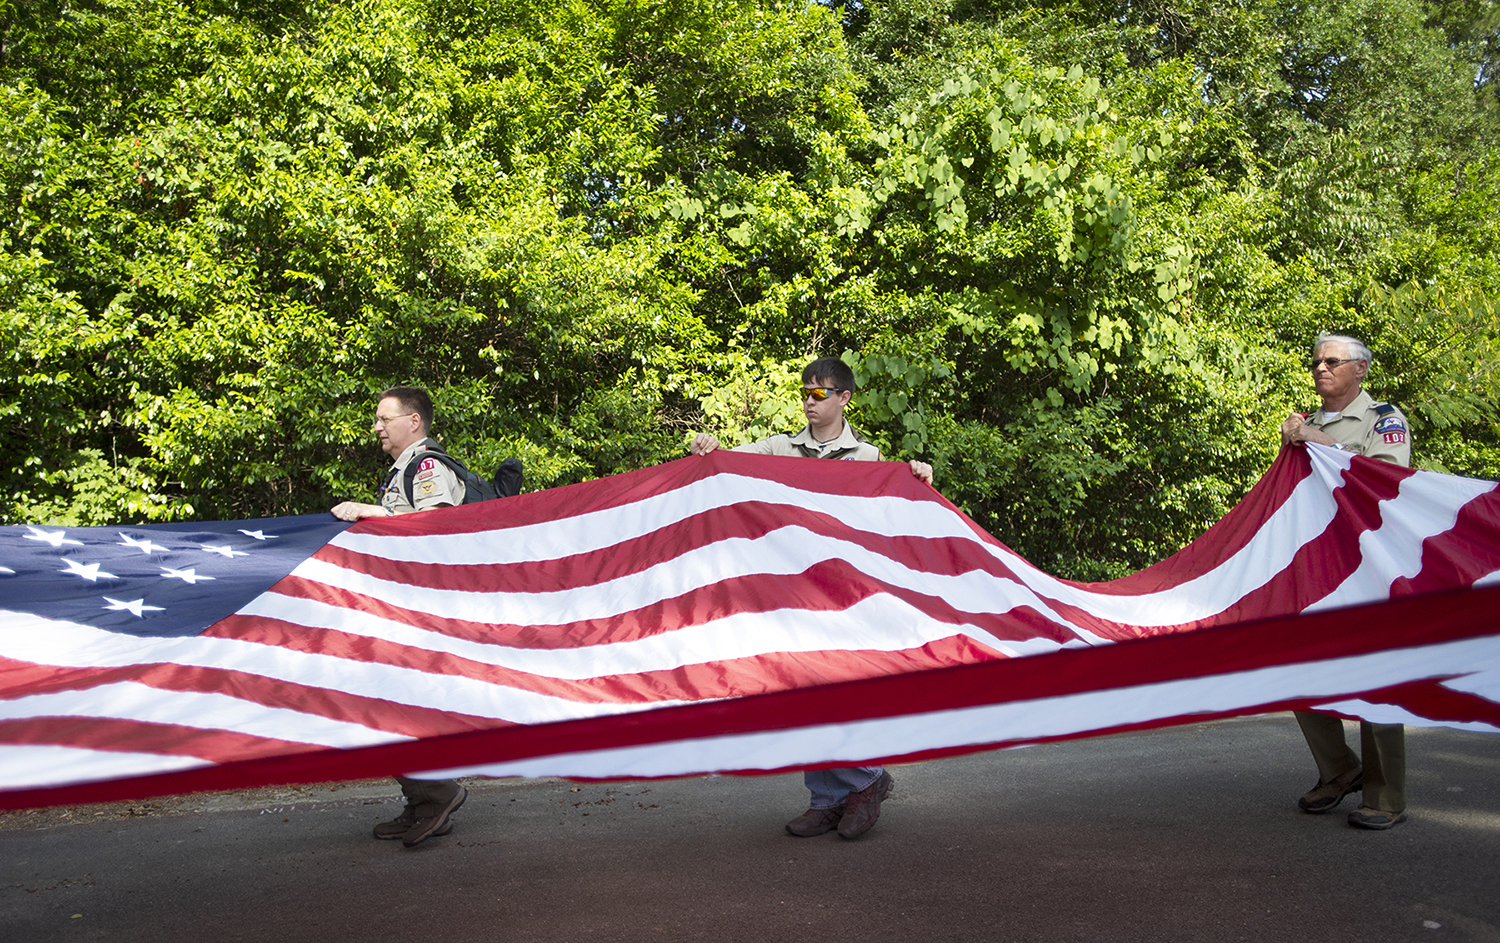 Boy Scout Troop 107 members Scott and Billy Ishmael, left and center, and Ray Stoner, right, carry a large American flag in the Brooks-Quinn Jones Elementary School Independence Day Parade on Tuesday, July 3, 2018, in Nacogdoches, Texas.